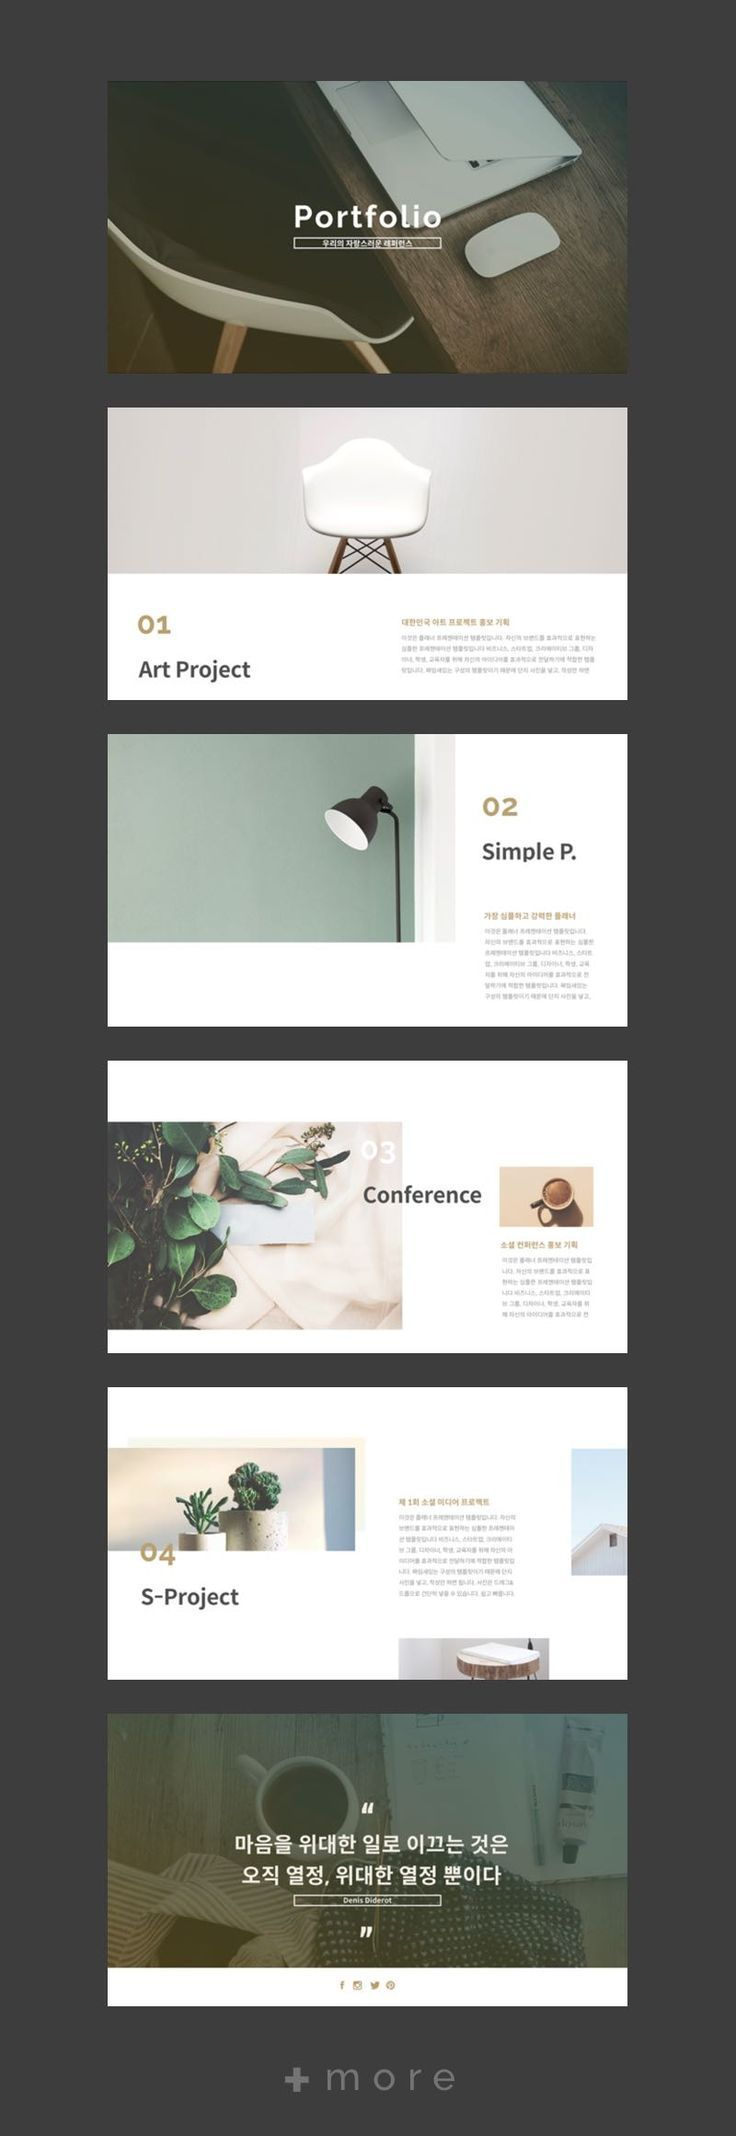 Einfache Layoutdesign-Ideen #simple #minimal #ppt #präsentation #template –